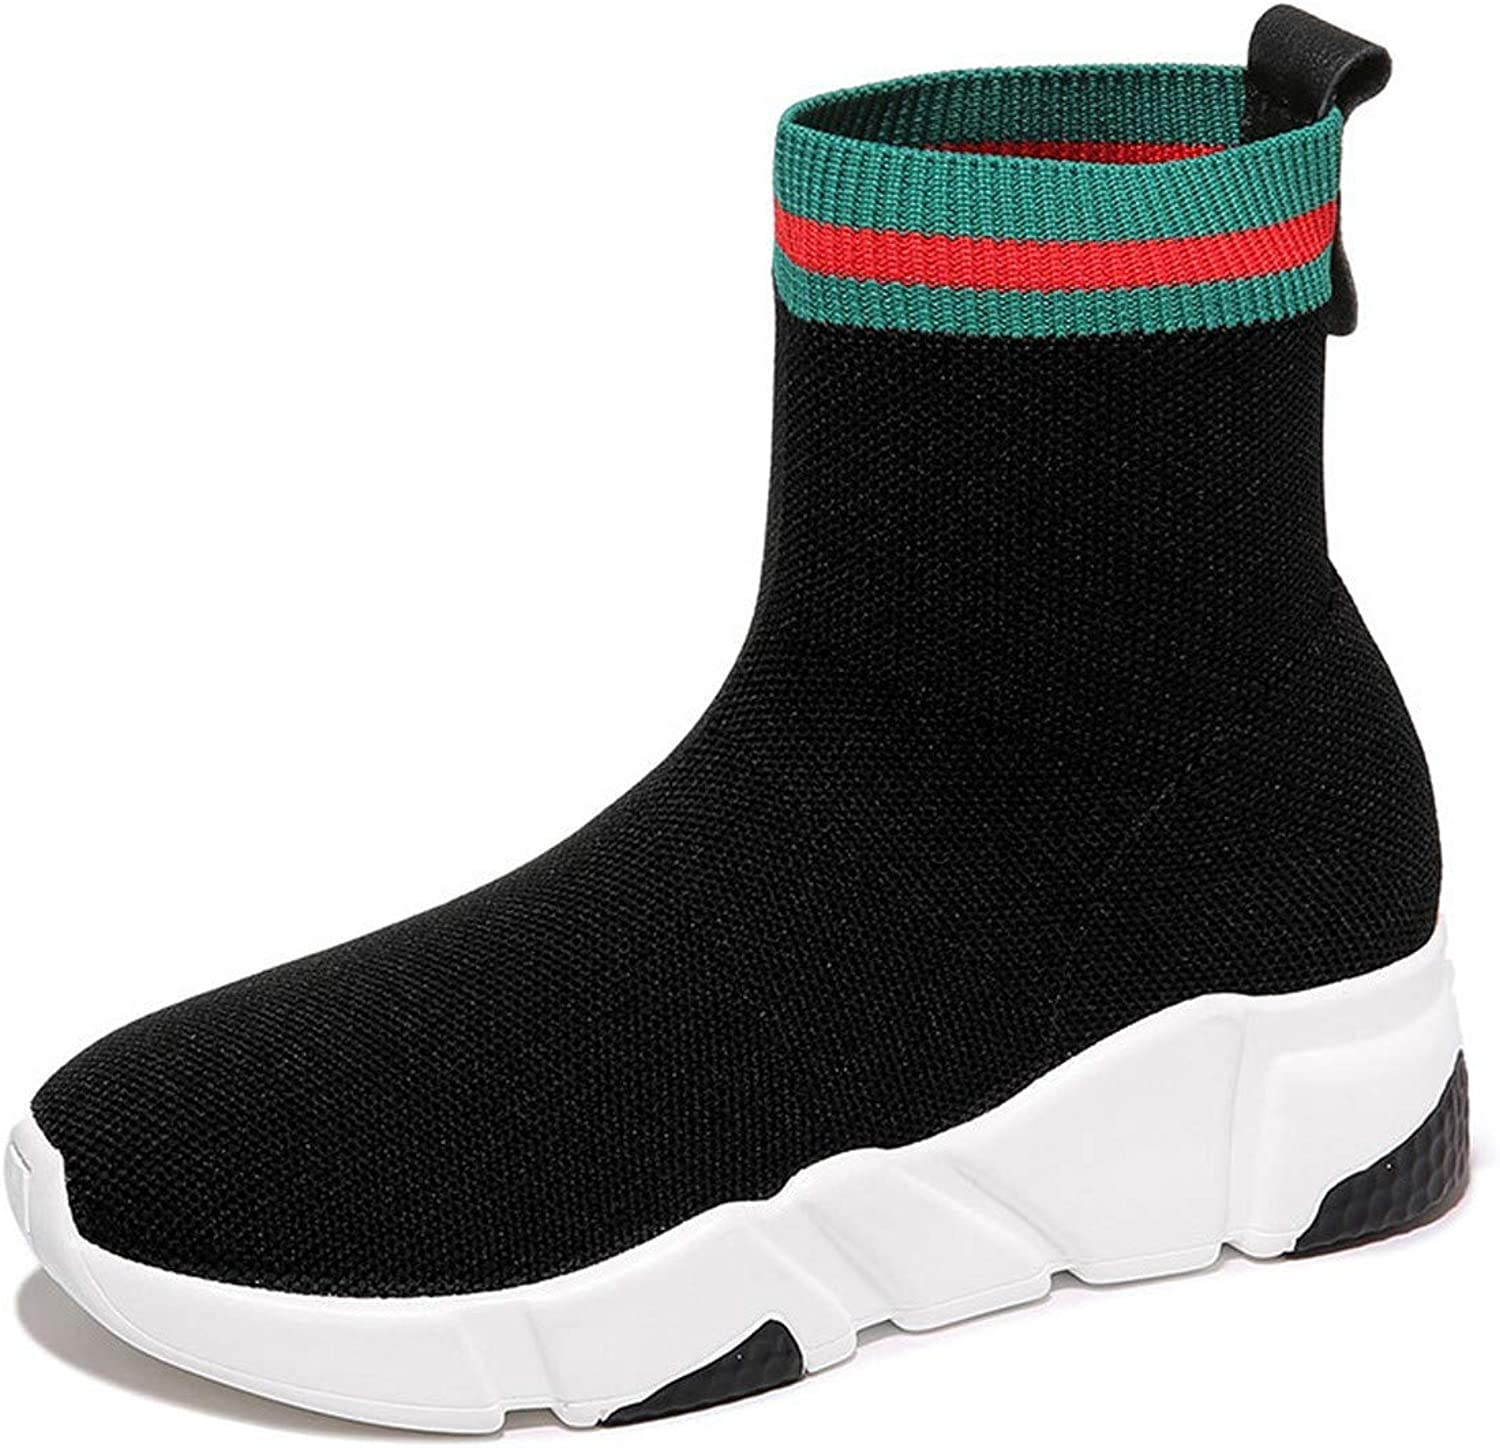 SFSYDDY Popular shoes New Women's shoes Elastic Comfort Sports shoes Leisure Muffin Socks shoes